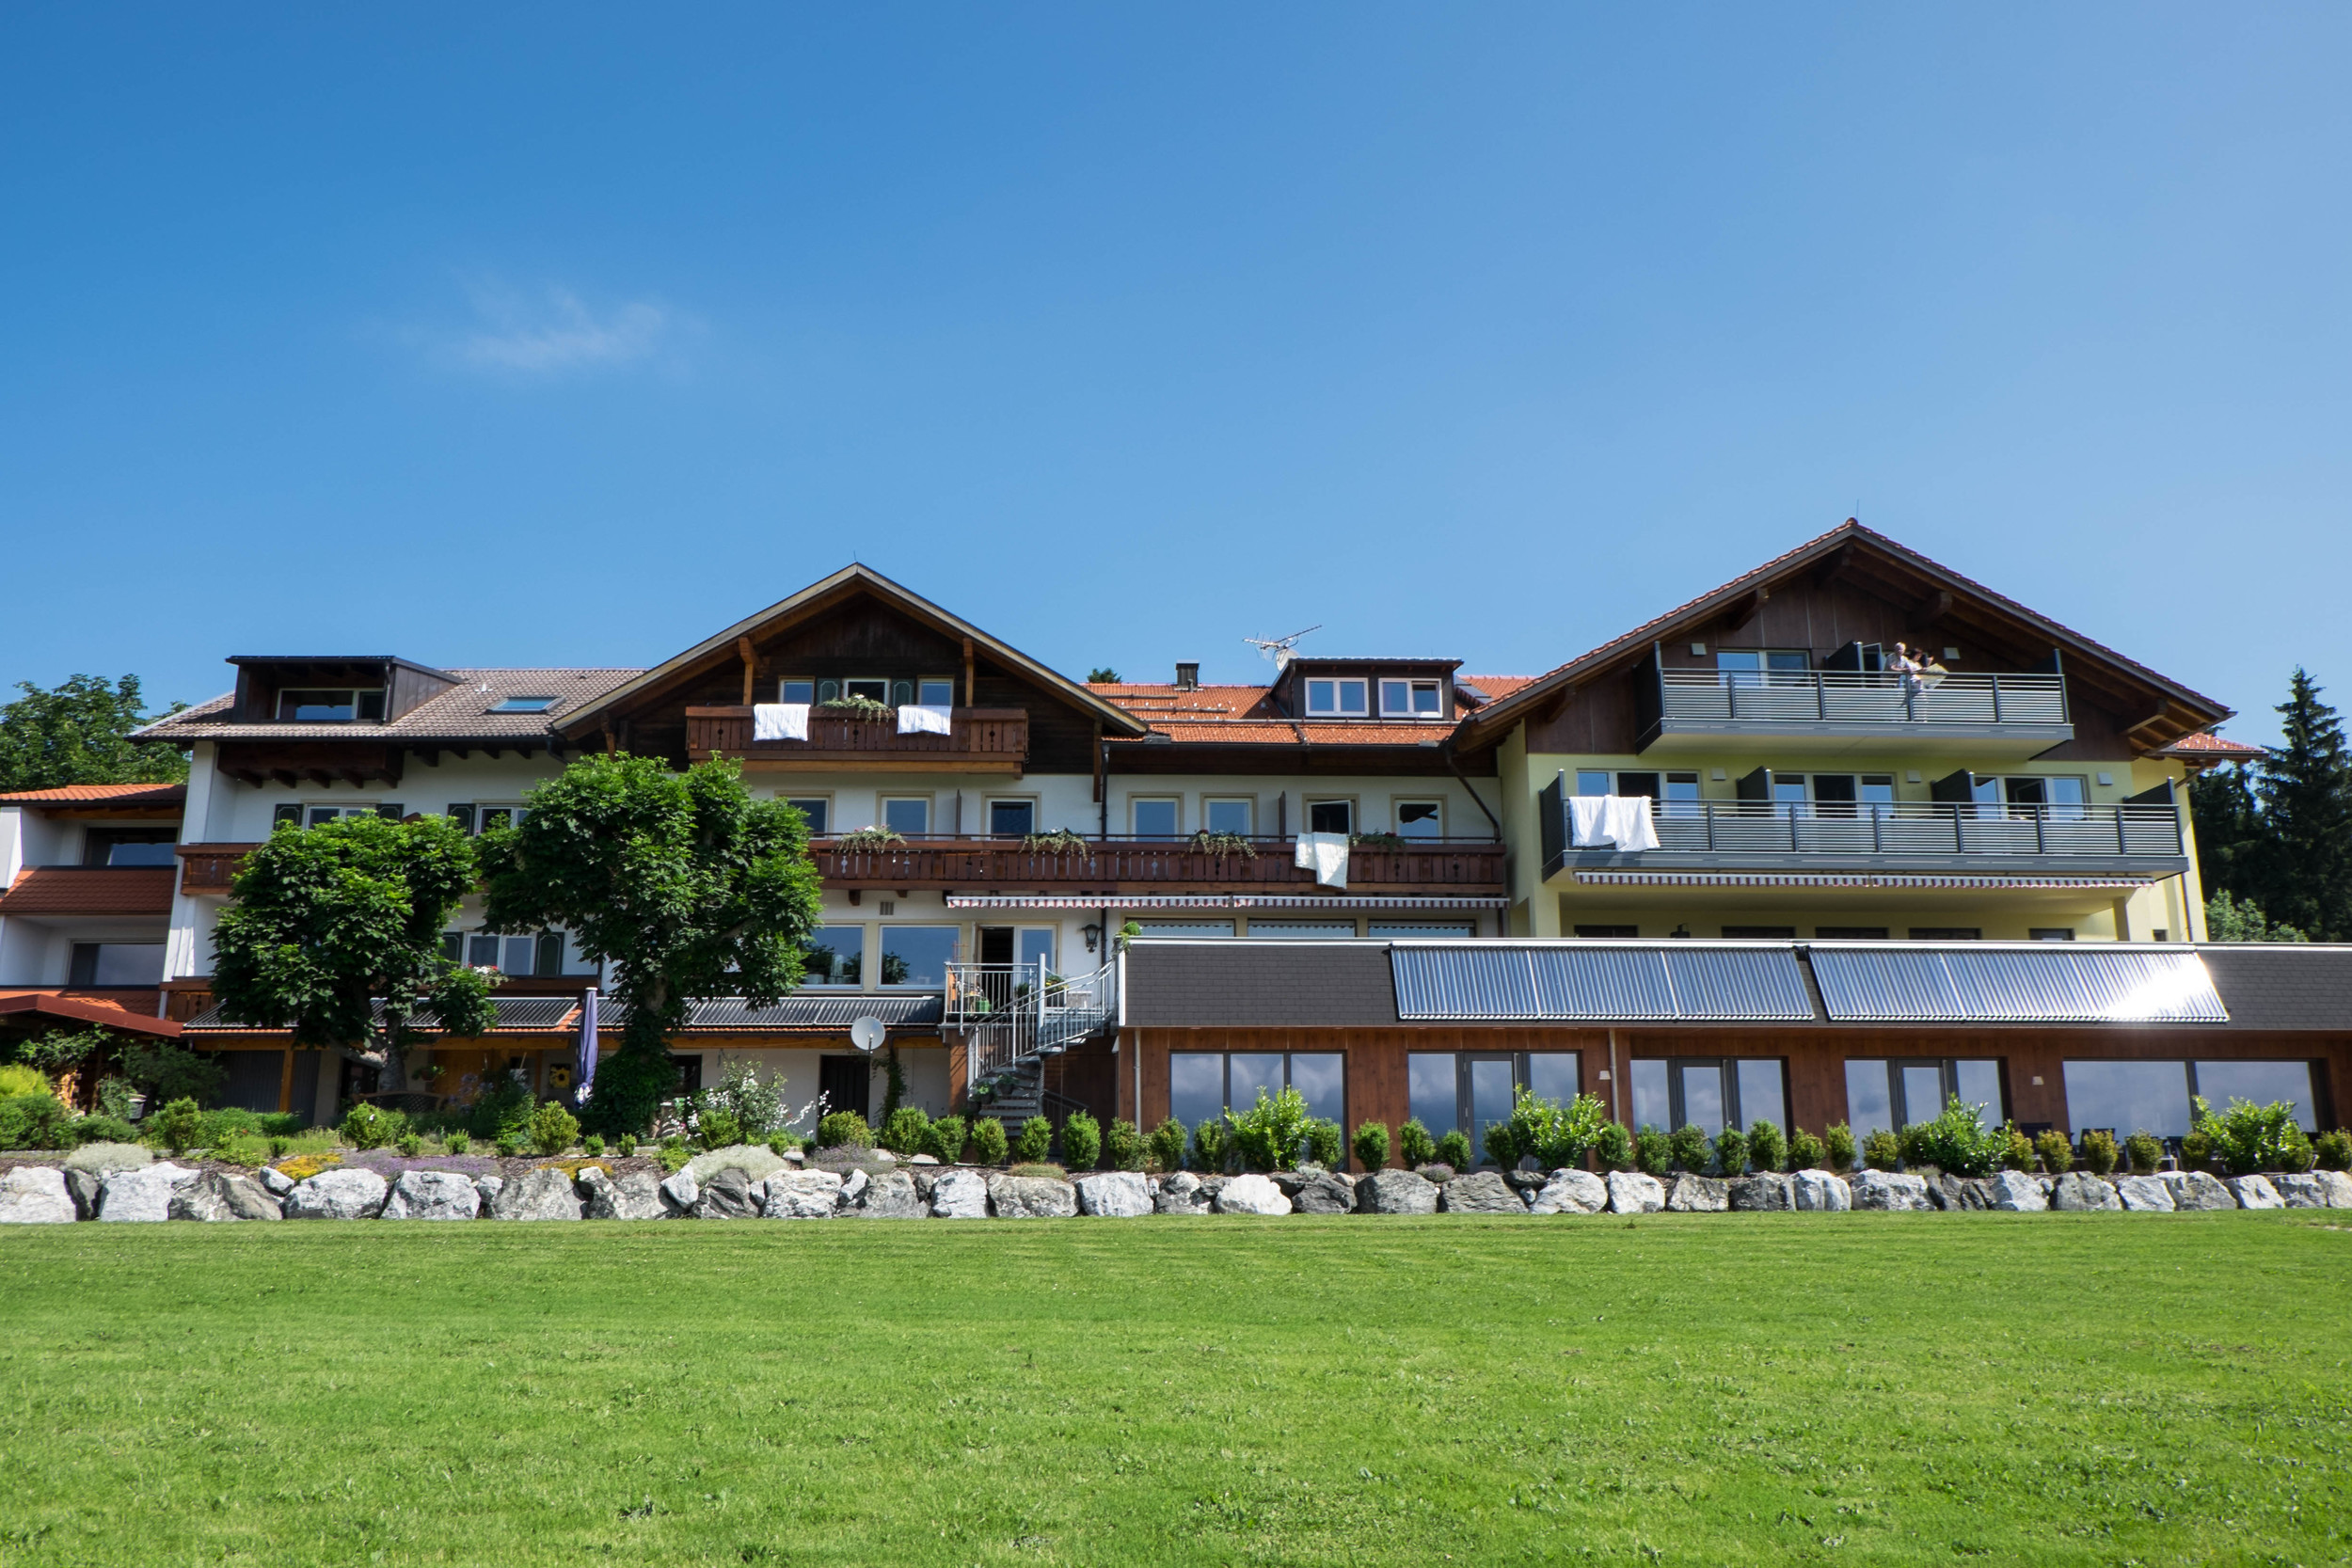 The hotel I stayed at -  Panorama Hotel  - a family run hotel for over 100 years!